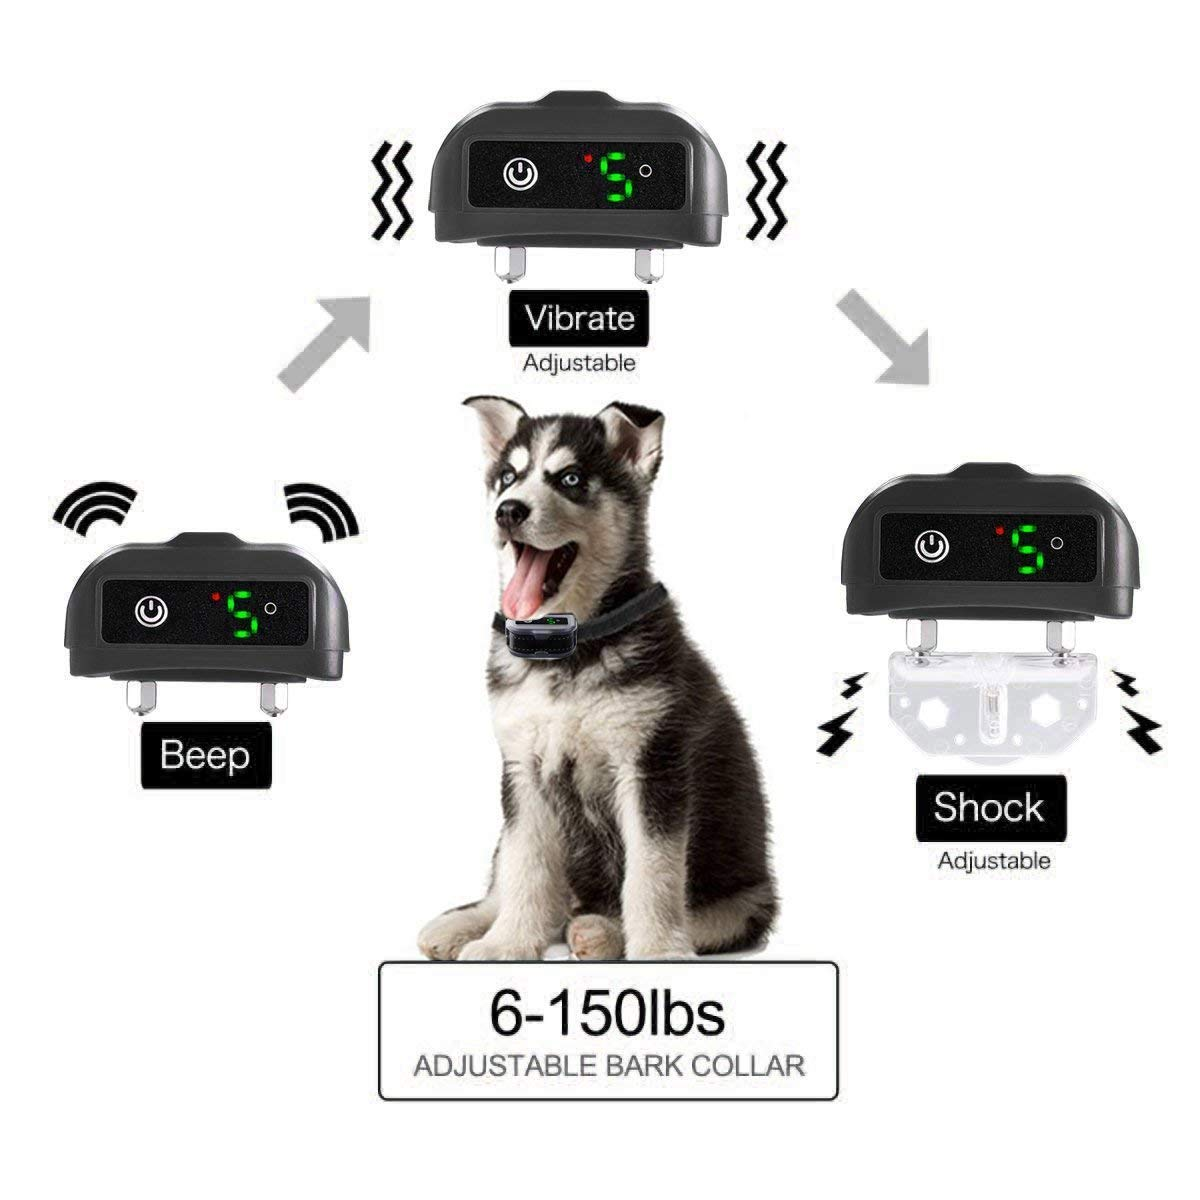 Amazon.com: mekuula no Bark Collar, recargable seguro de ...